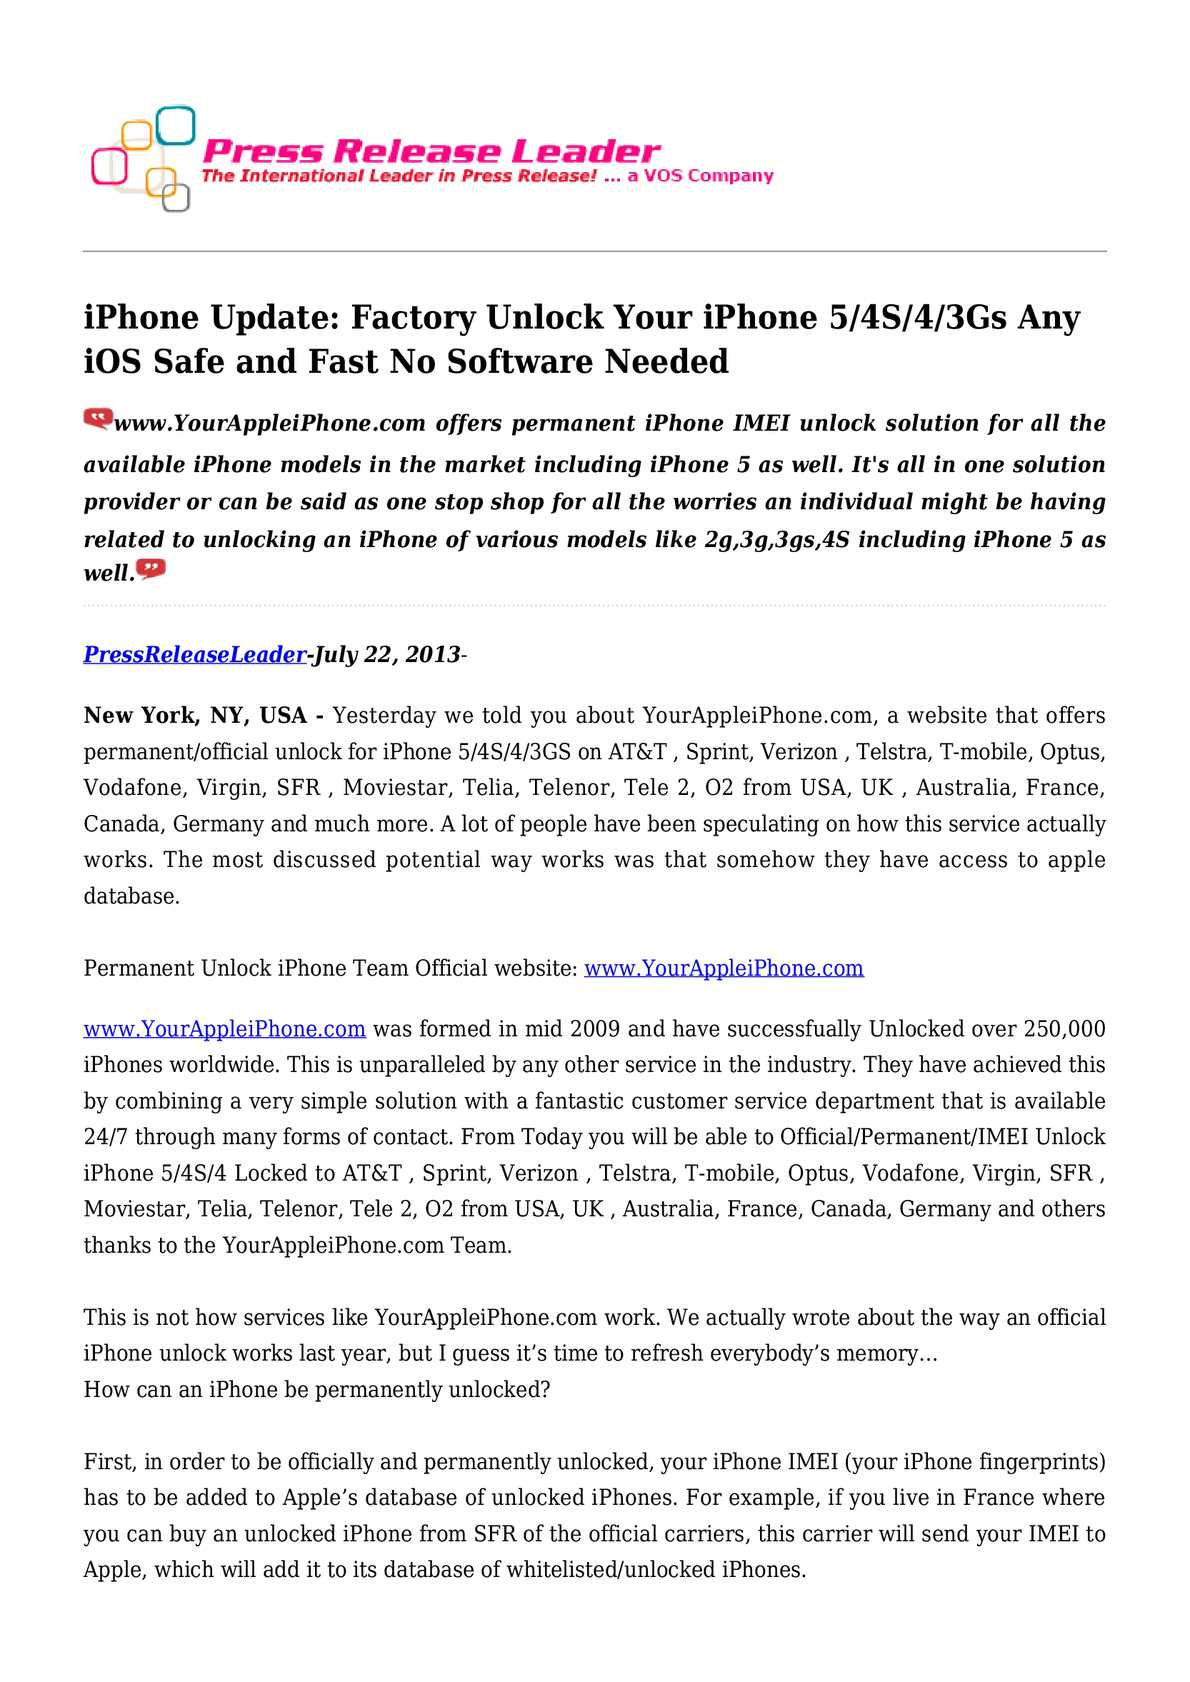 Calaméo - iPhone Update: Factory Unlock Your iPhone 5/4S/4/3Gs Any